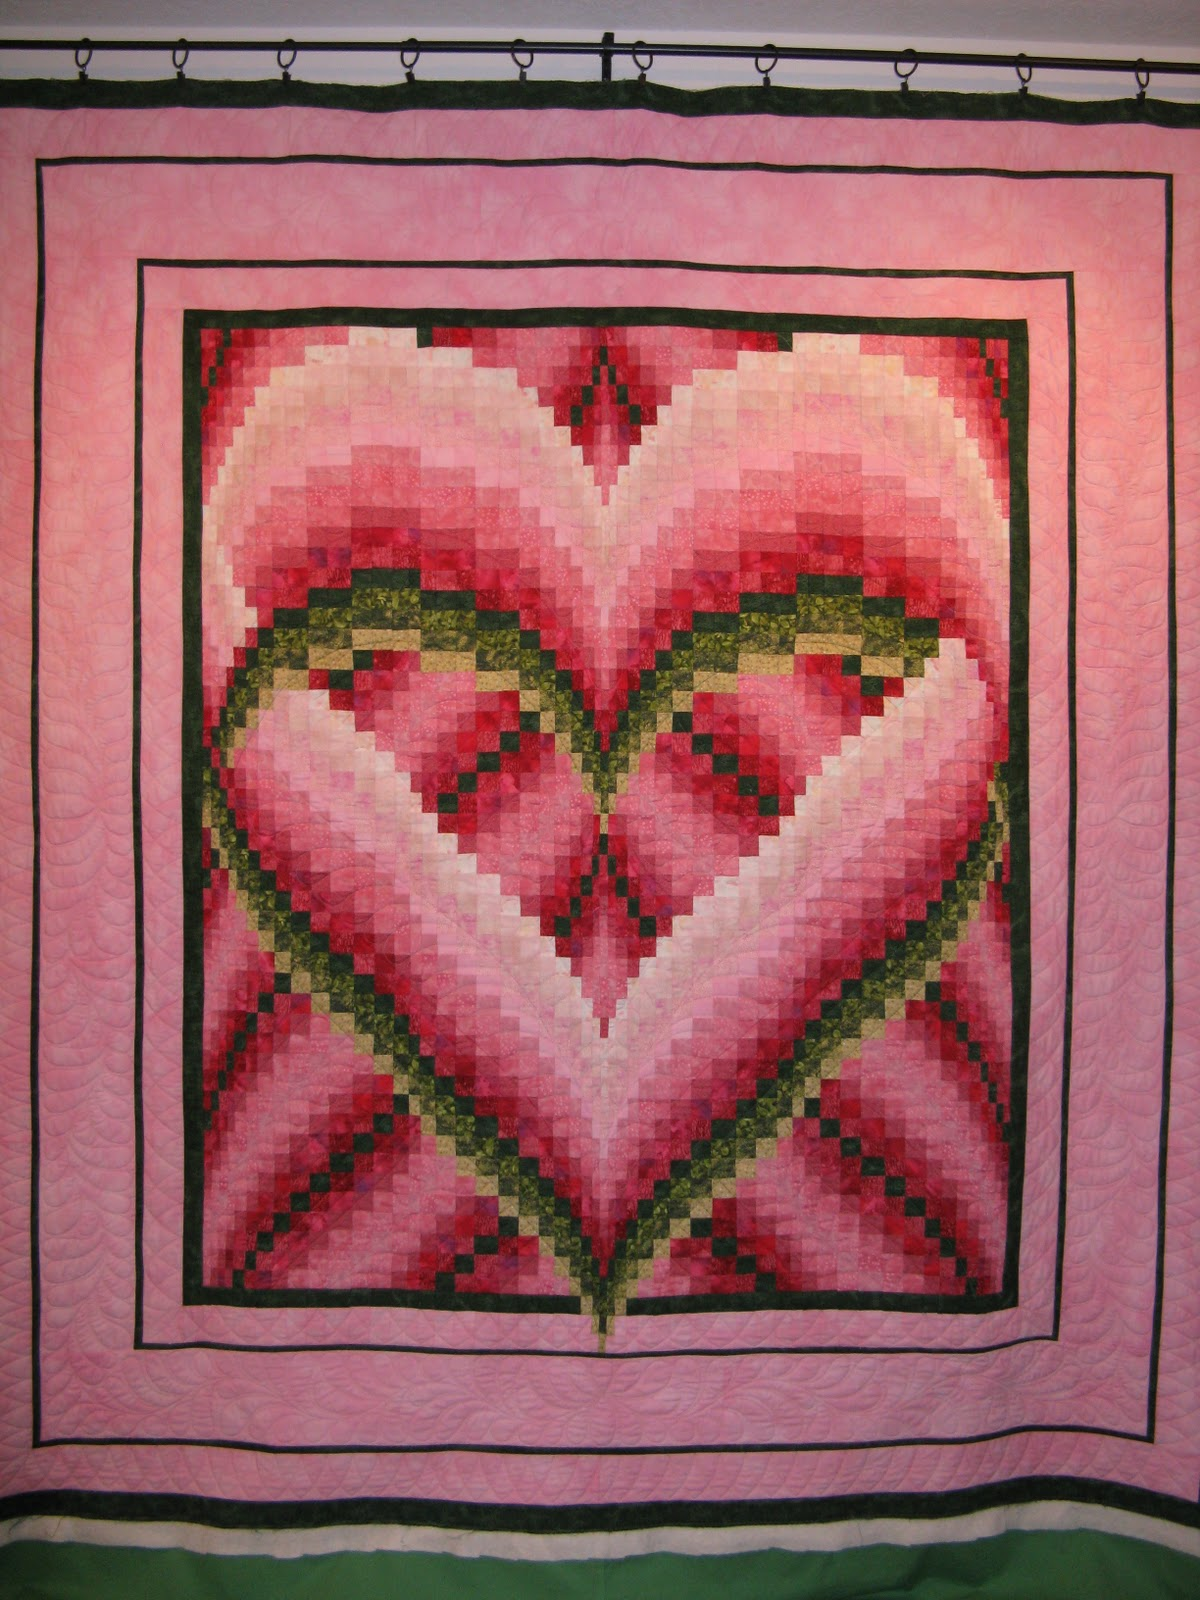 Bargello Quilt - Uses, Instructions and Patterns | Stitch Piece n Purl : heart bargello quilt pattern - Adamdwight.com